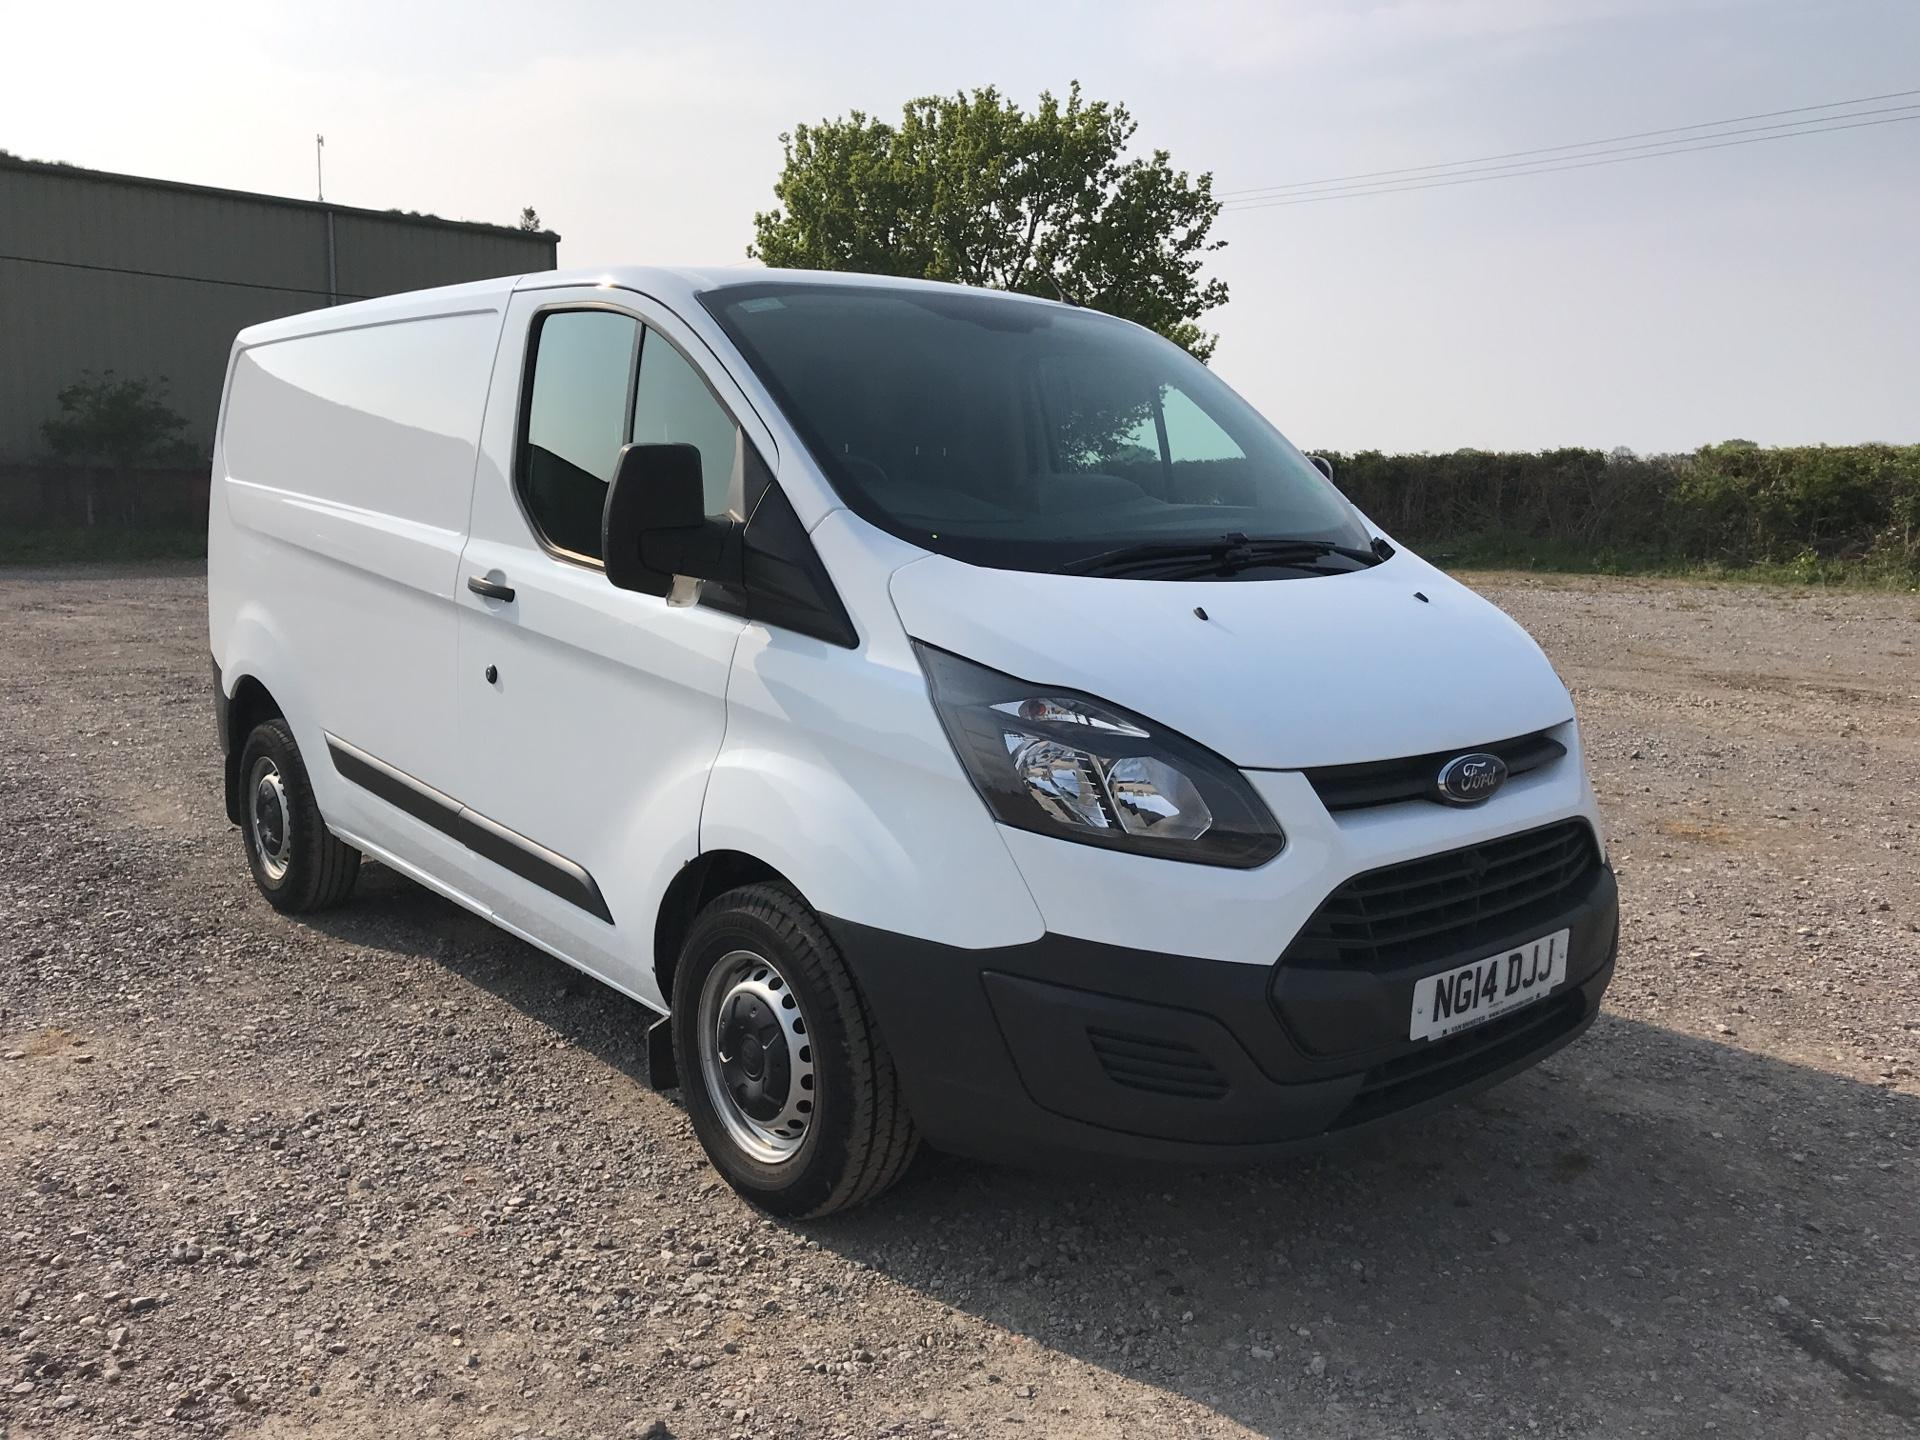 2014 Ford Transit Custom 290 L1 DIESEL FWD 2.2 TDCI 100PS LOW ROOF VAN EURO 5 (NG14DJJ)